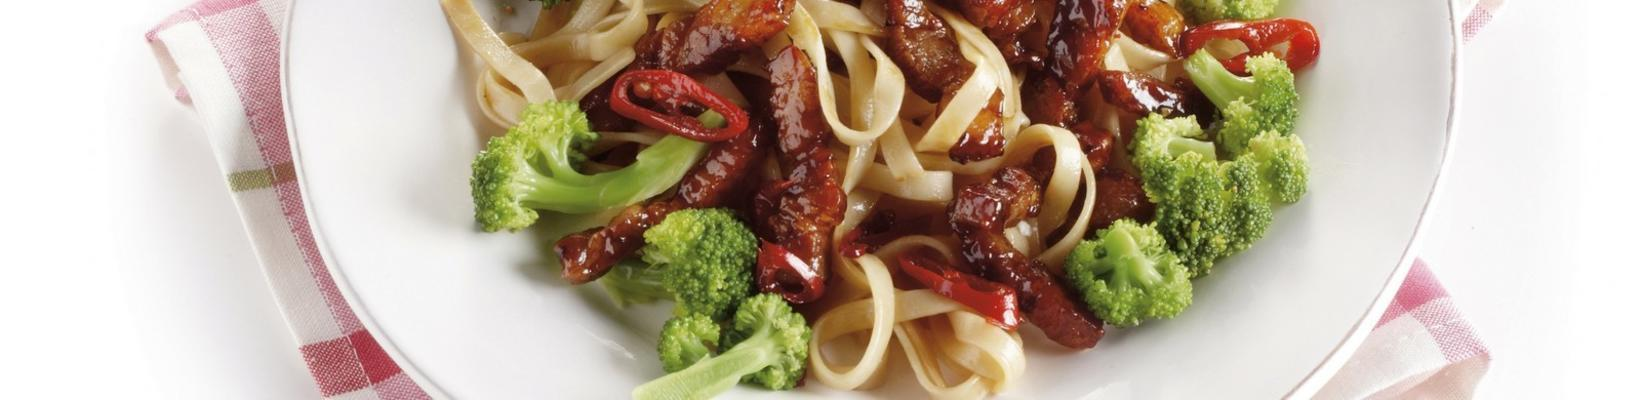 stir-fried bacon strips with broccoli and noodles